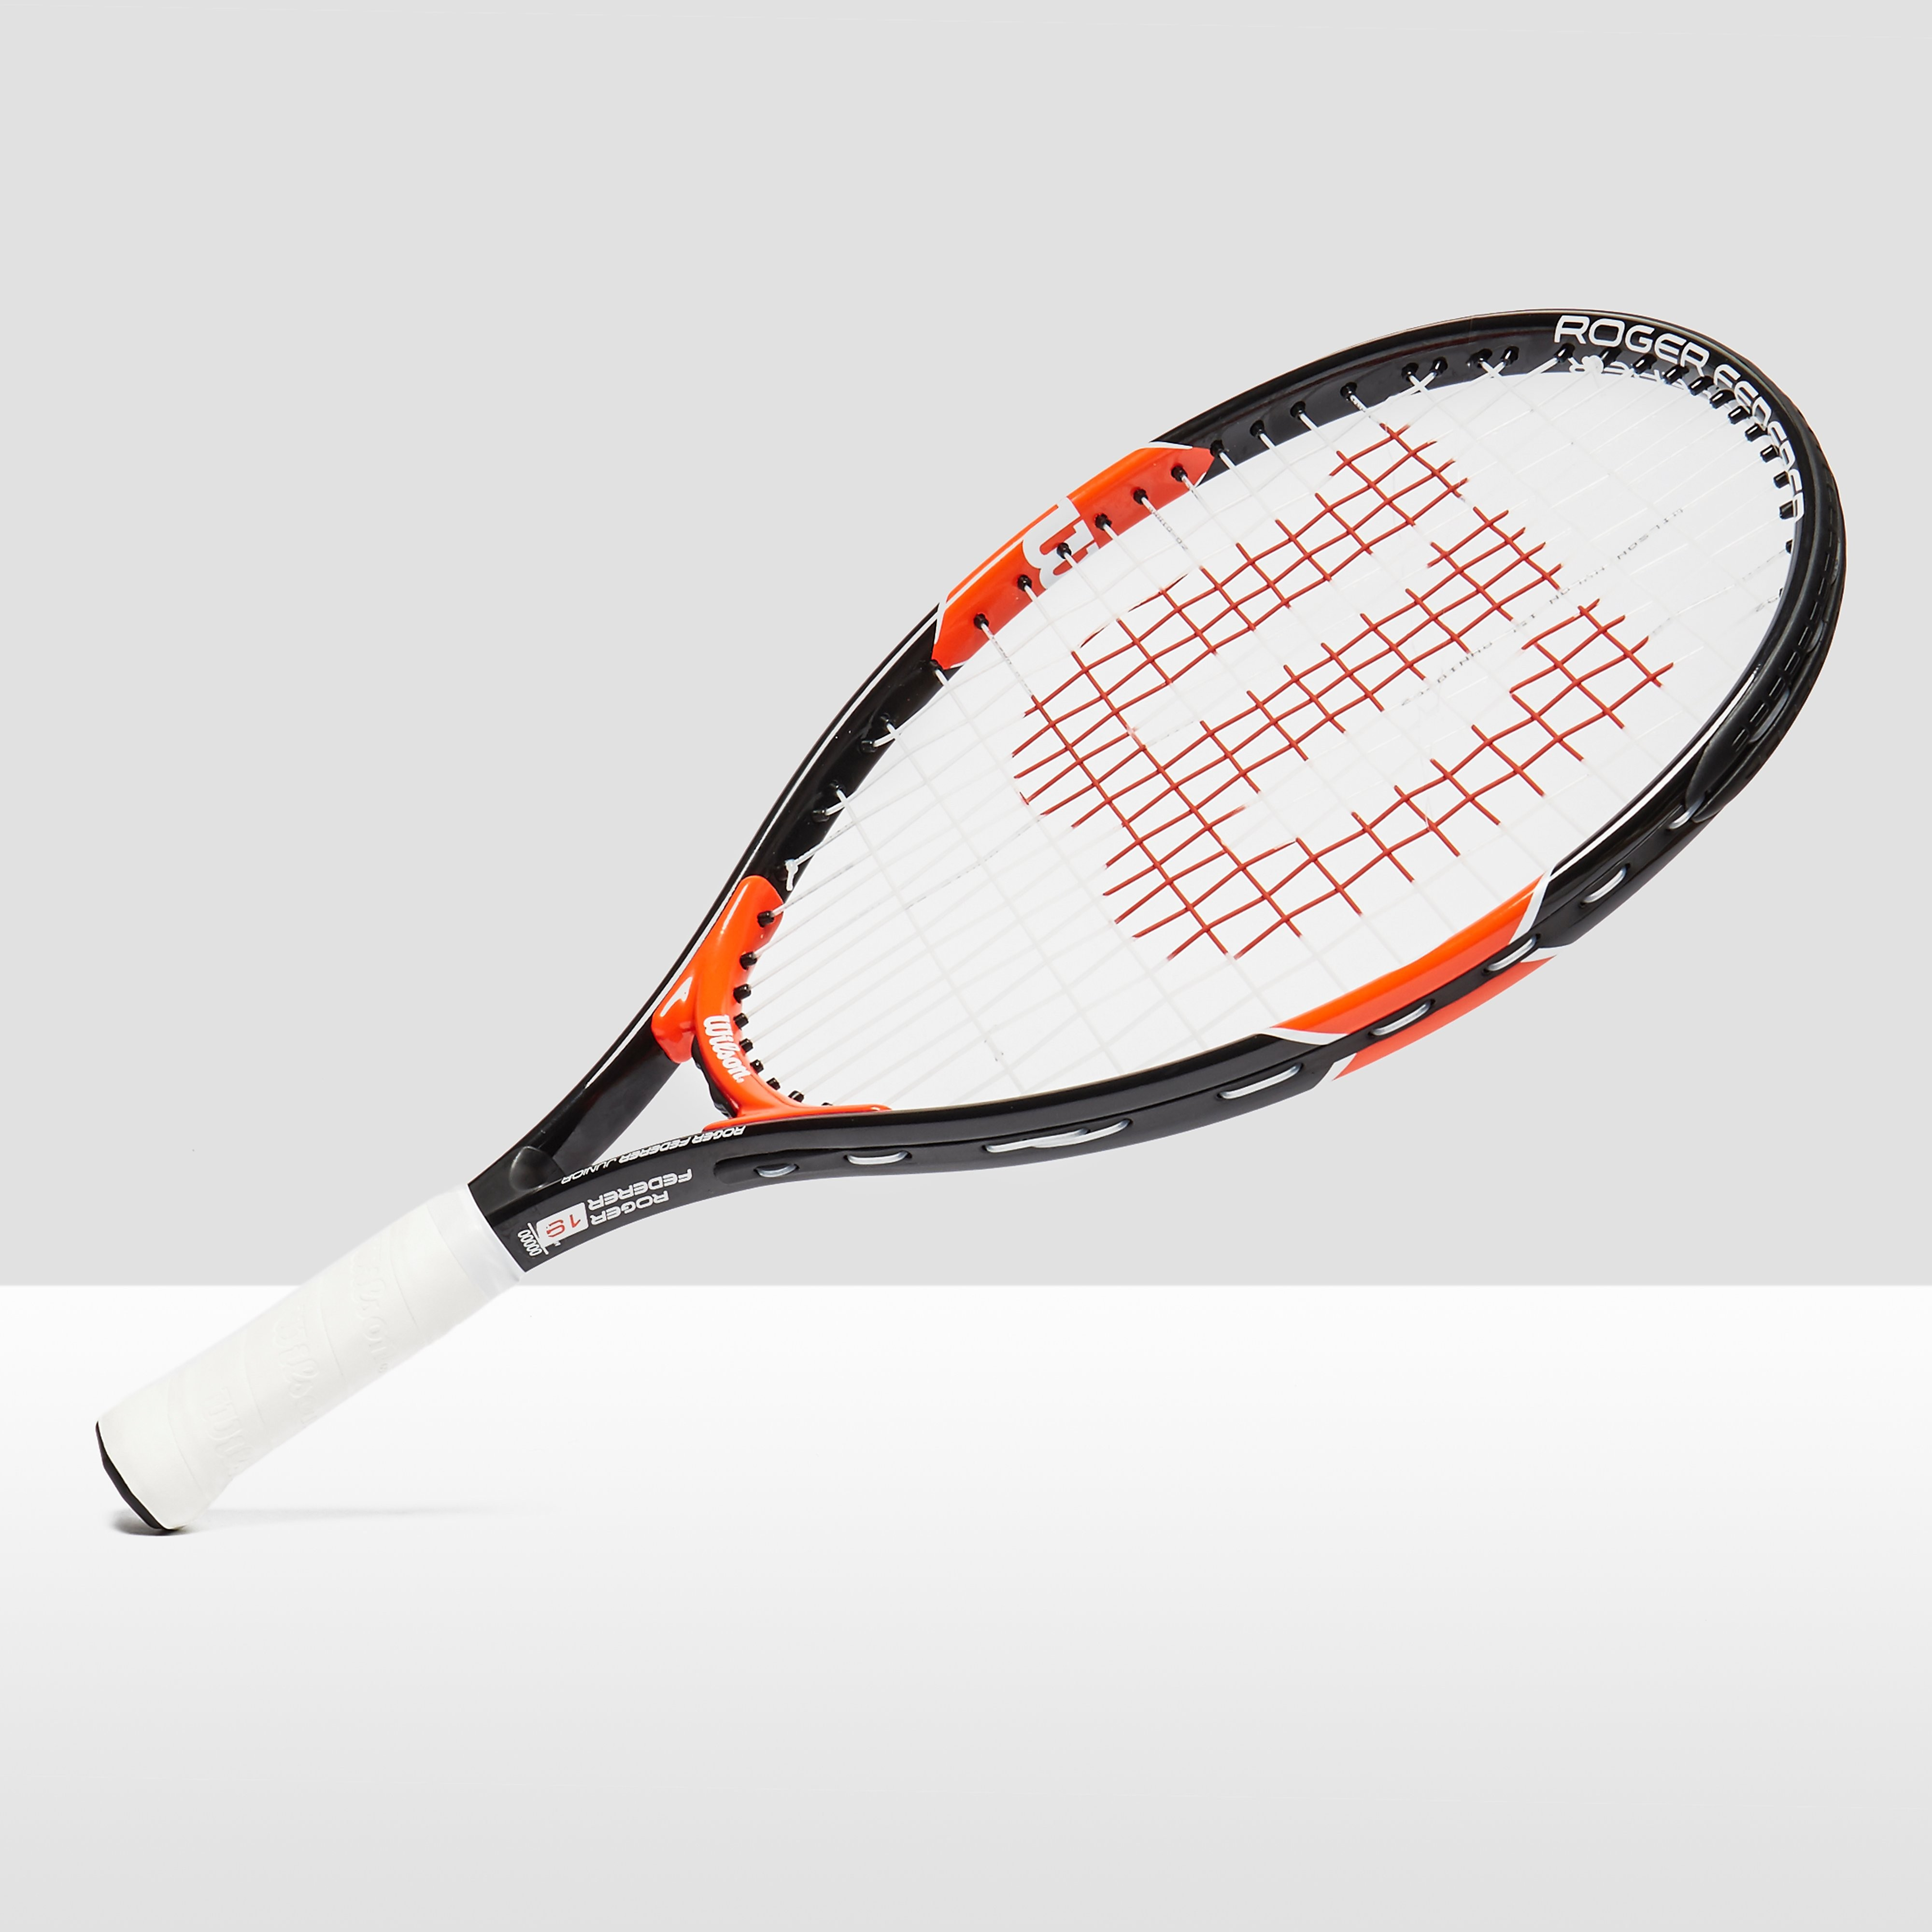 Wilson Roger Federer 19 Inch Junior Tennis Racket